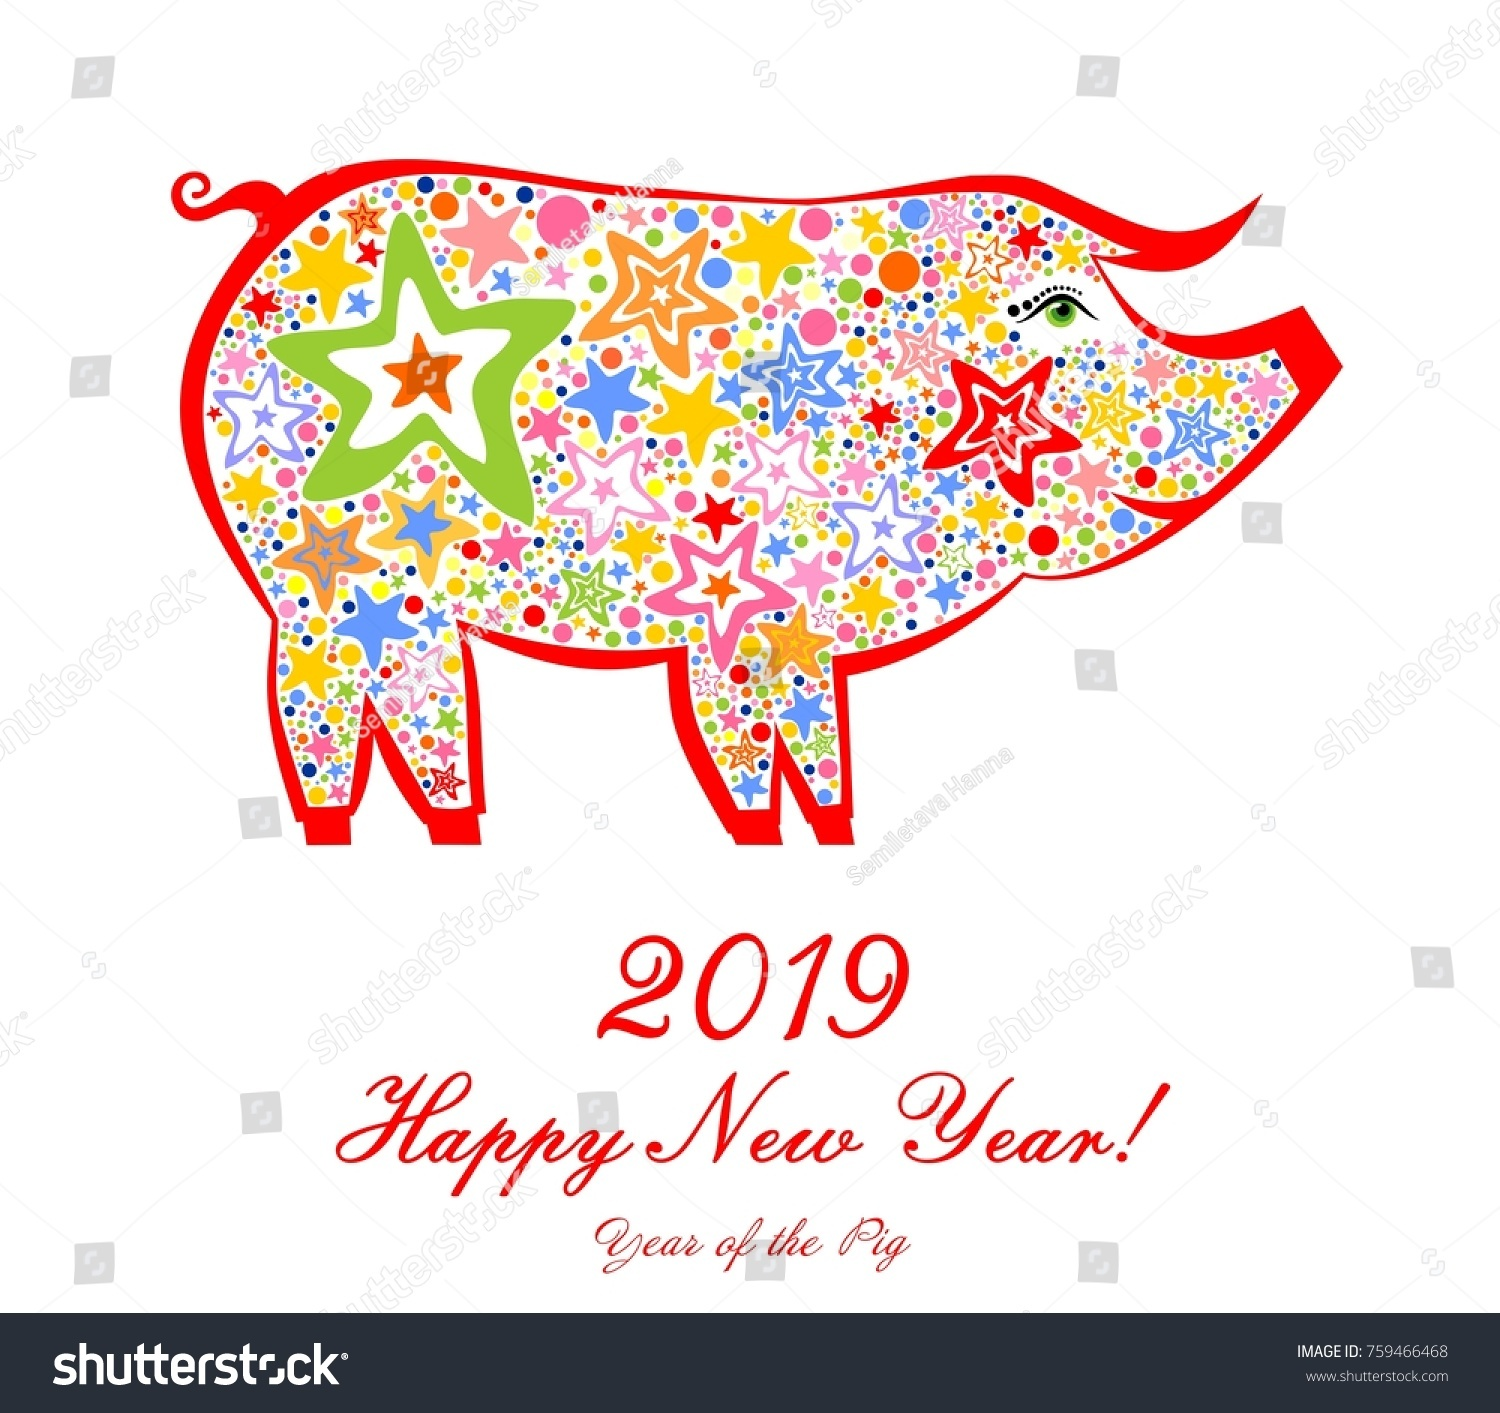 2019 happy new year greeting card stock vector 759466468 2019 happy new year greeting card celebration white background with pig and place for your kristyandbryce Gallery